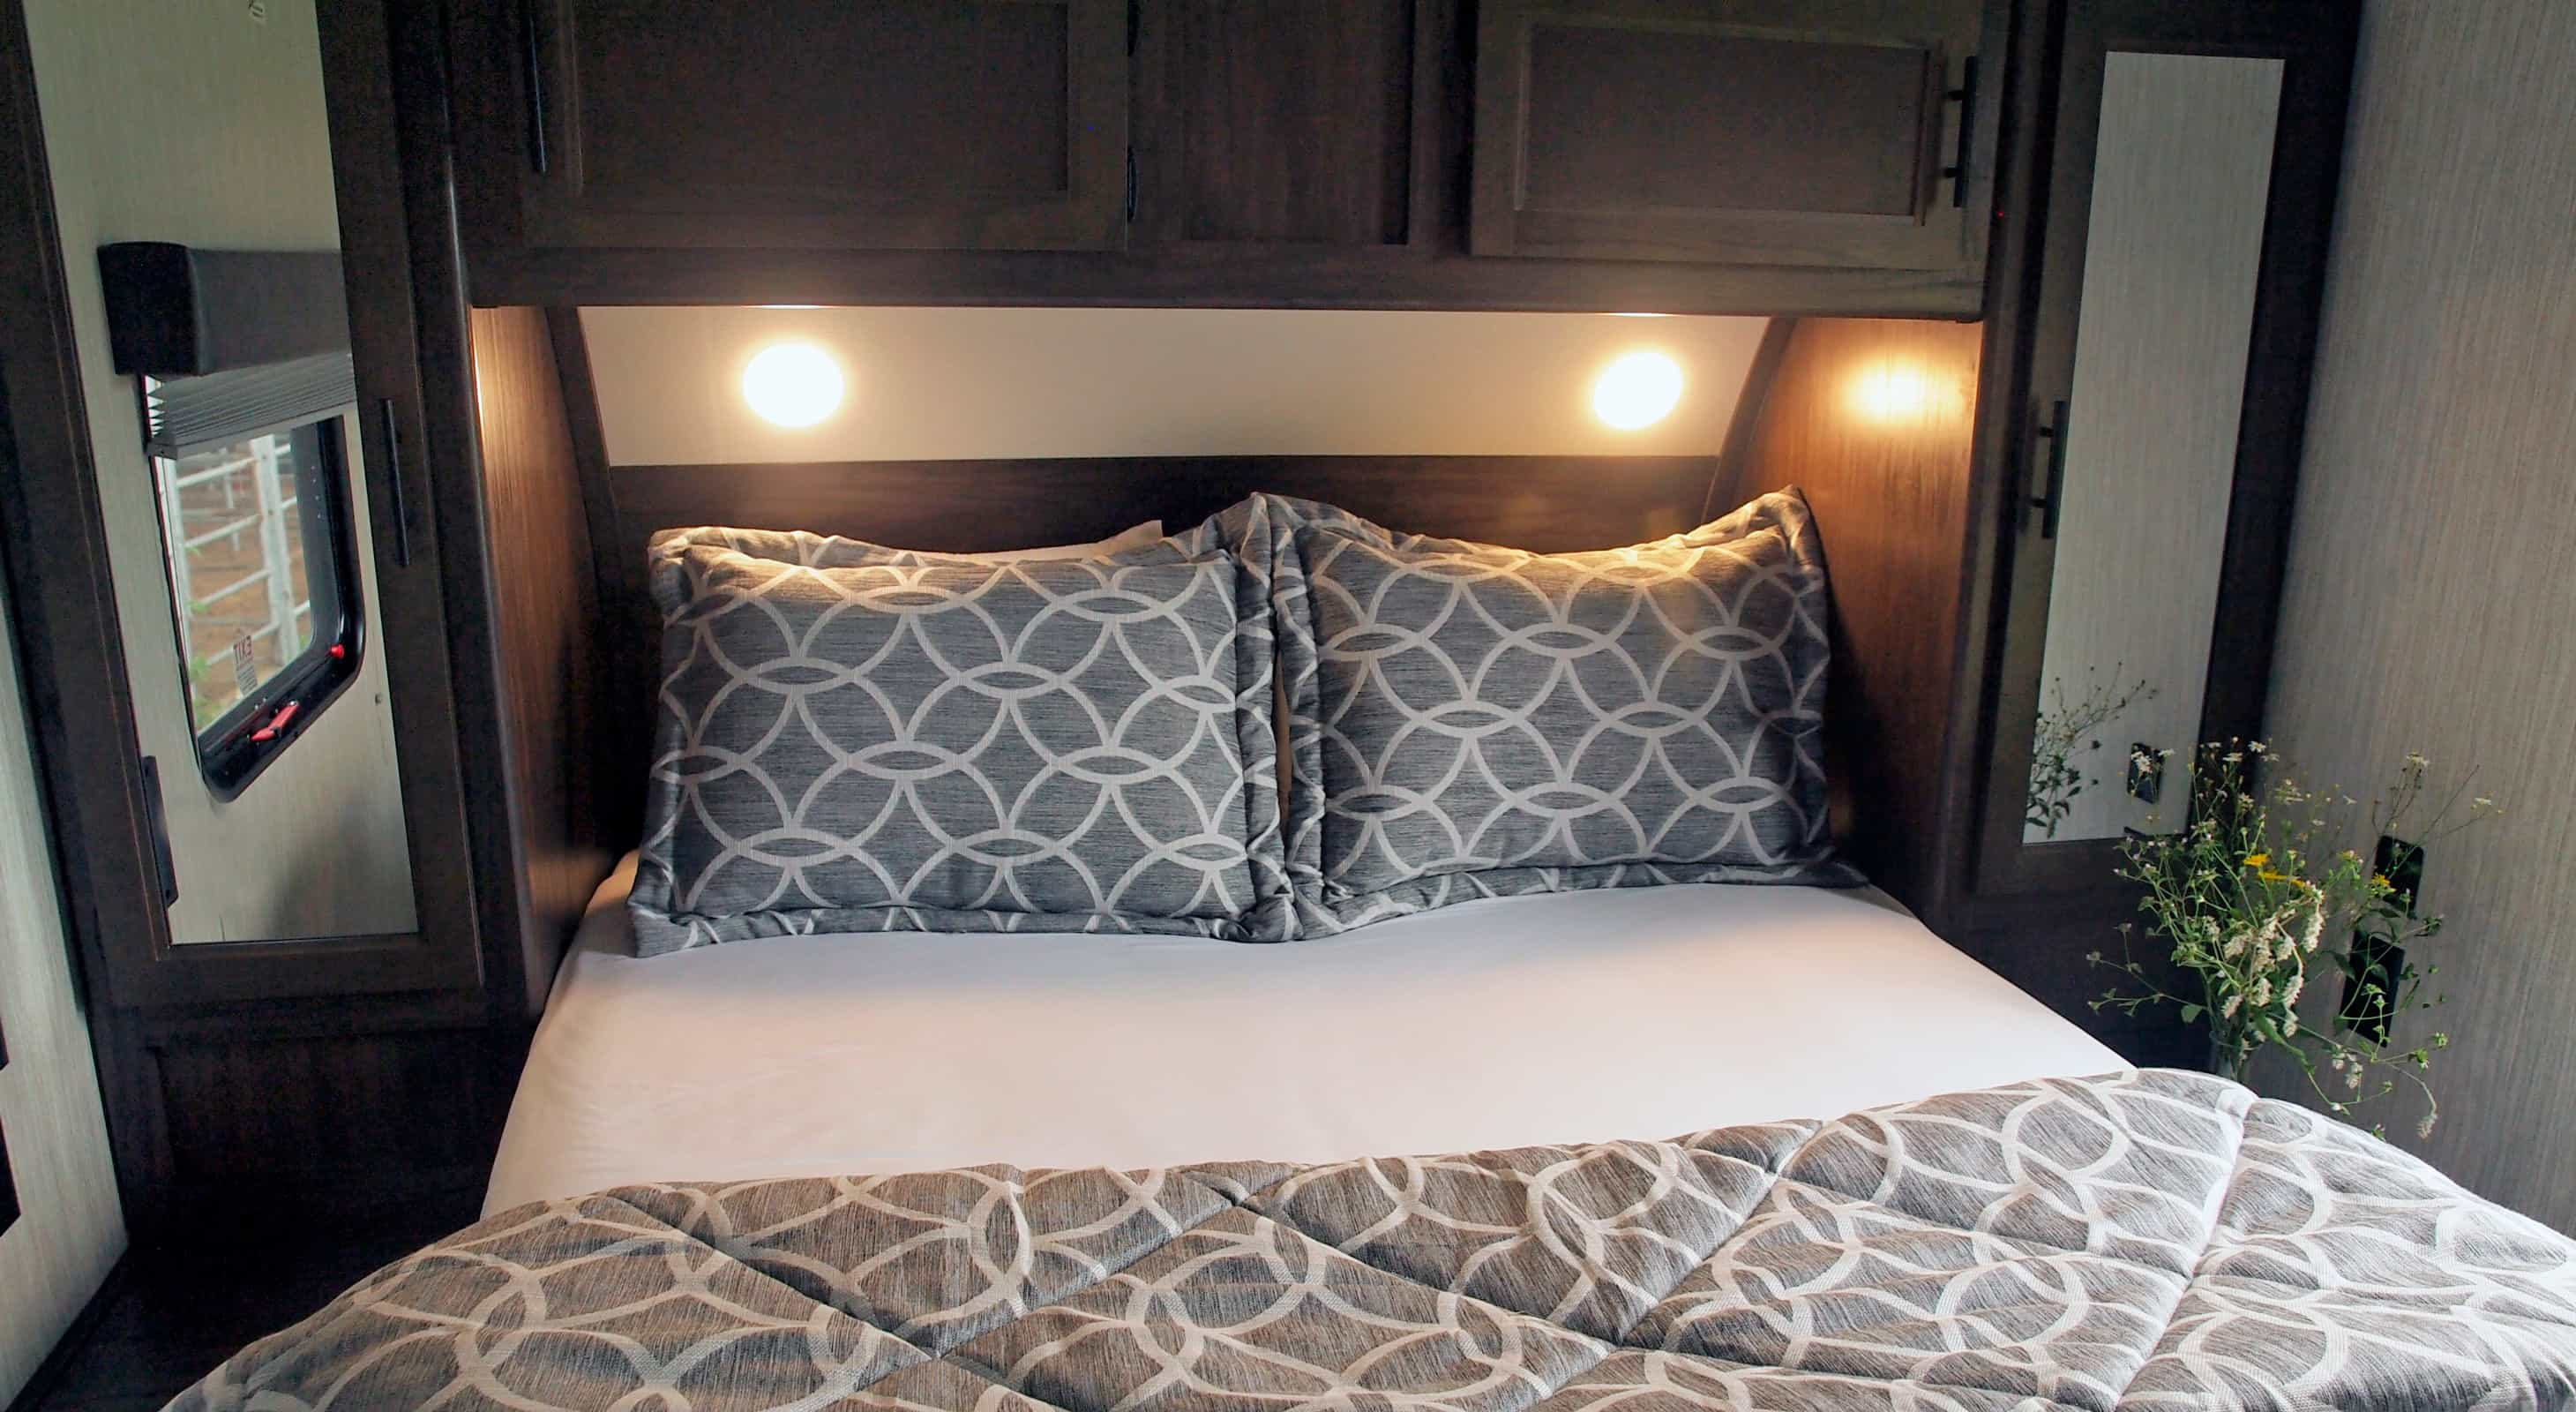 Bed at the LakeView Deluxe RV near Houston